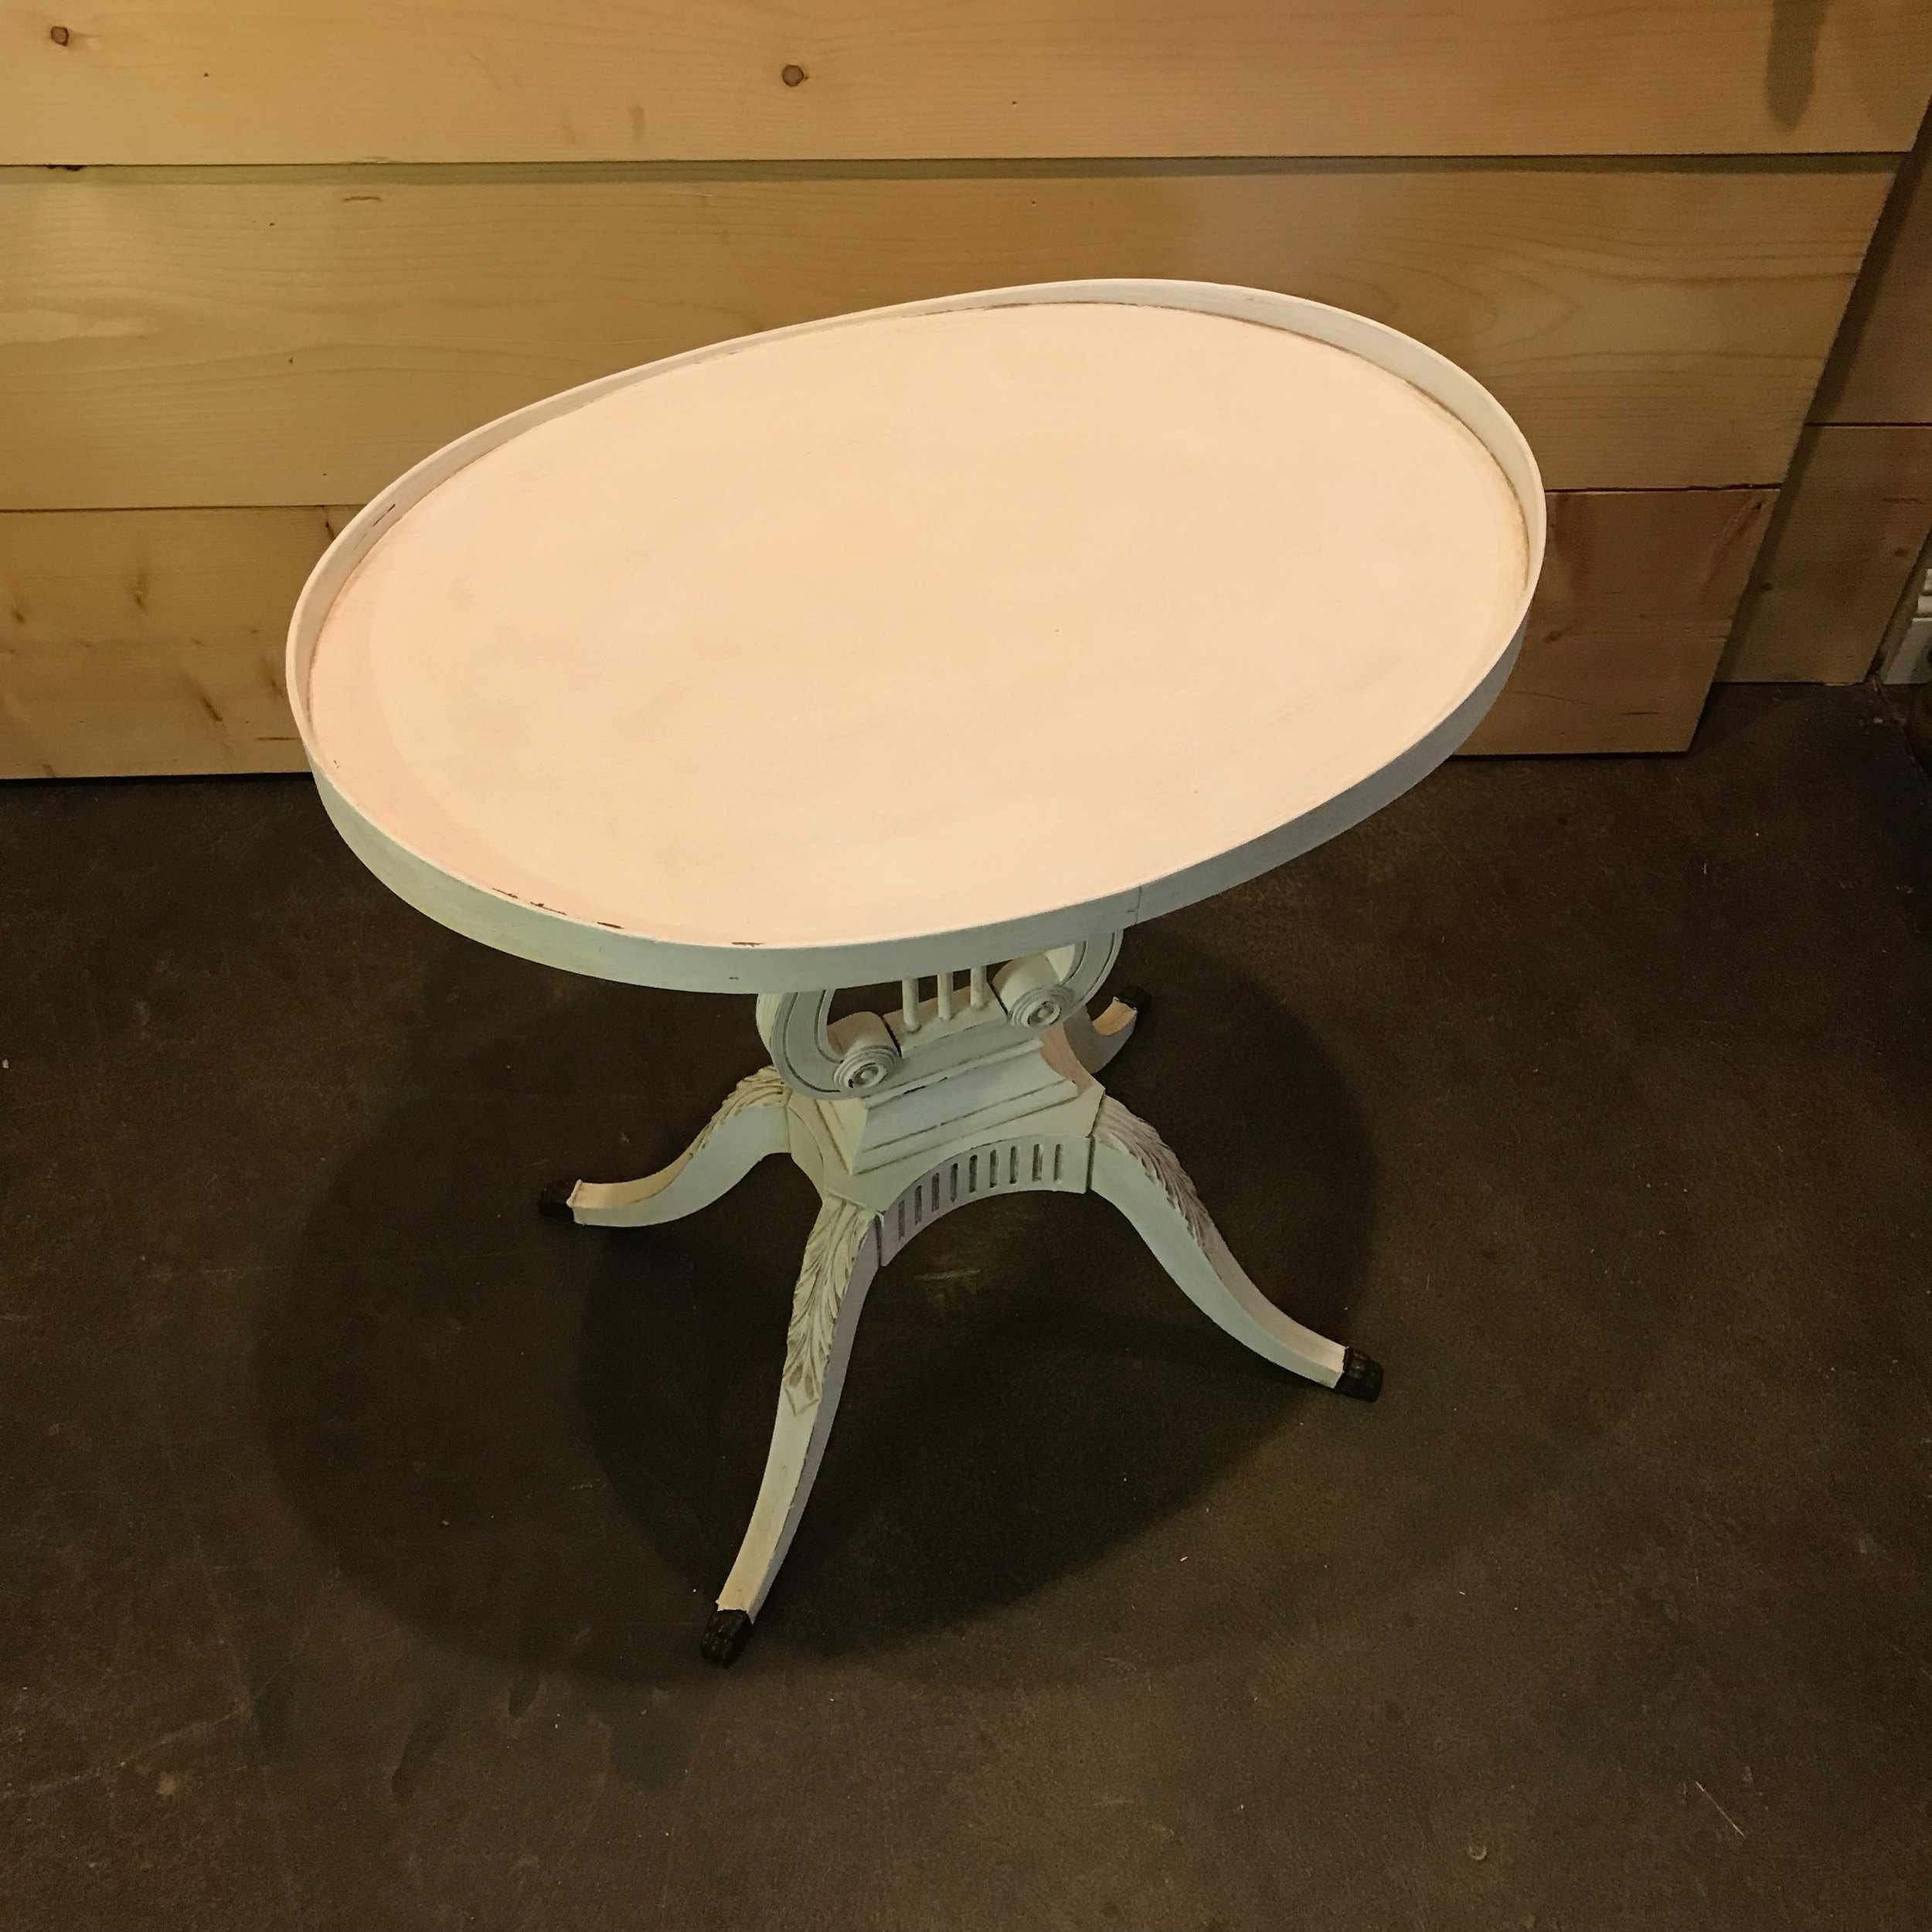 Harp table painted white chalk paint, distressed, and antiqued.